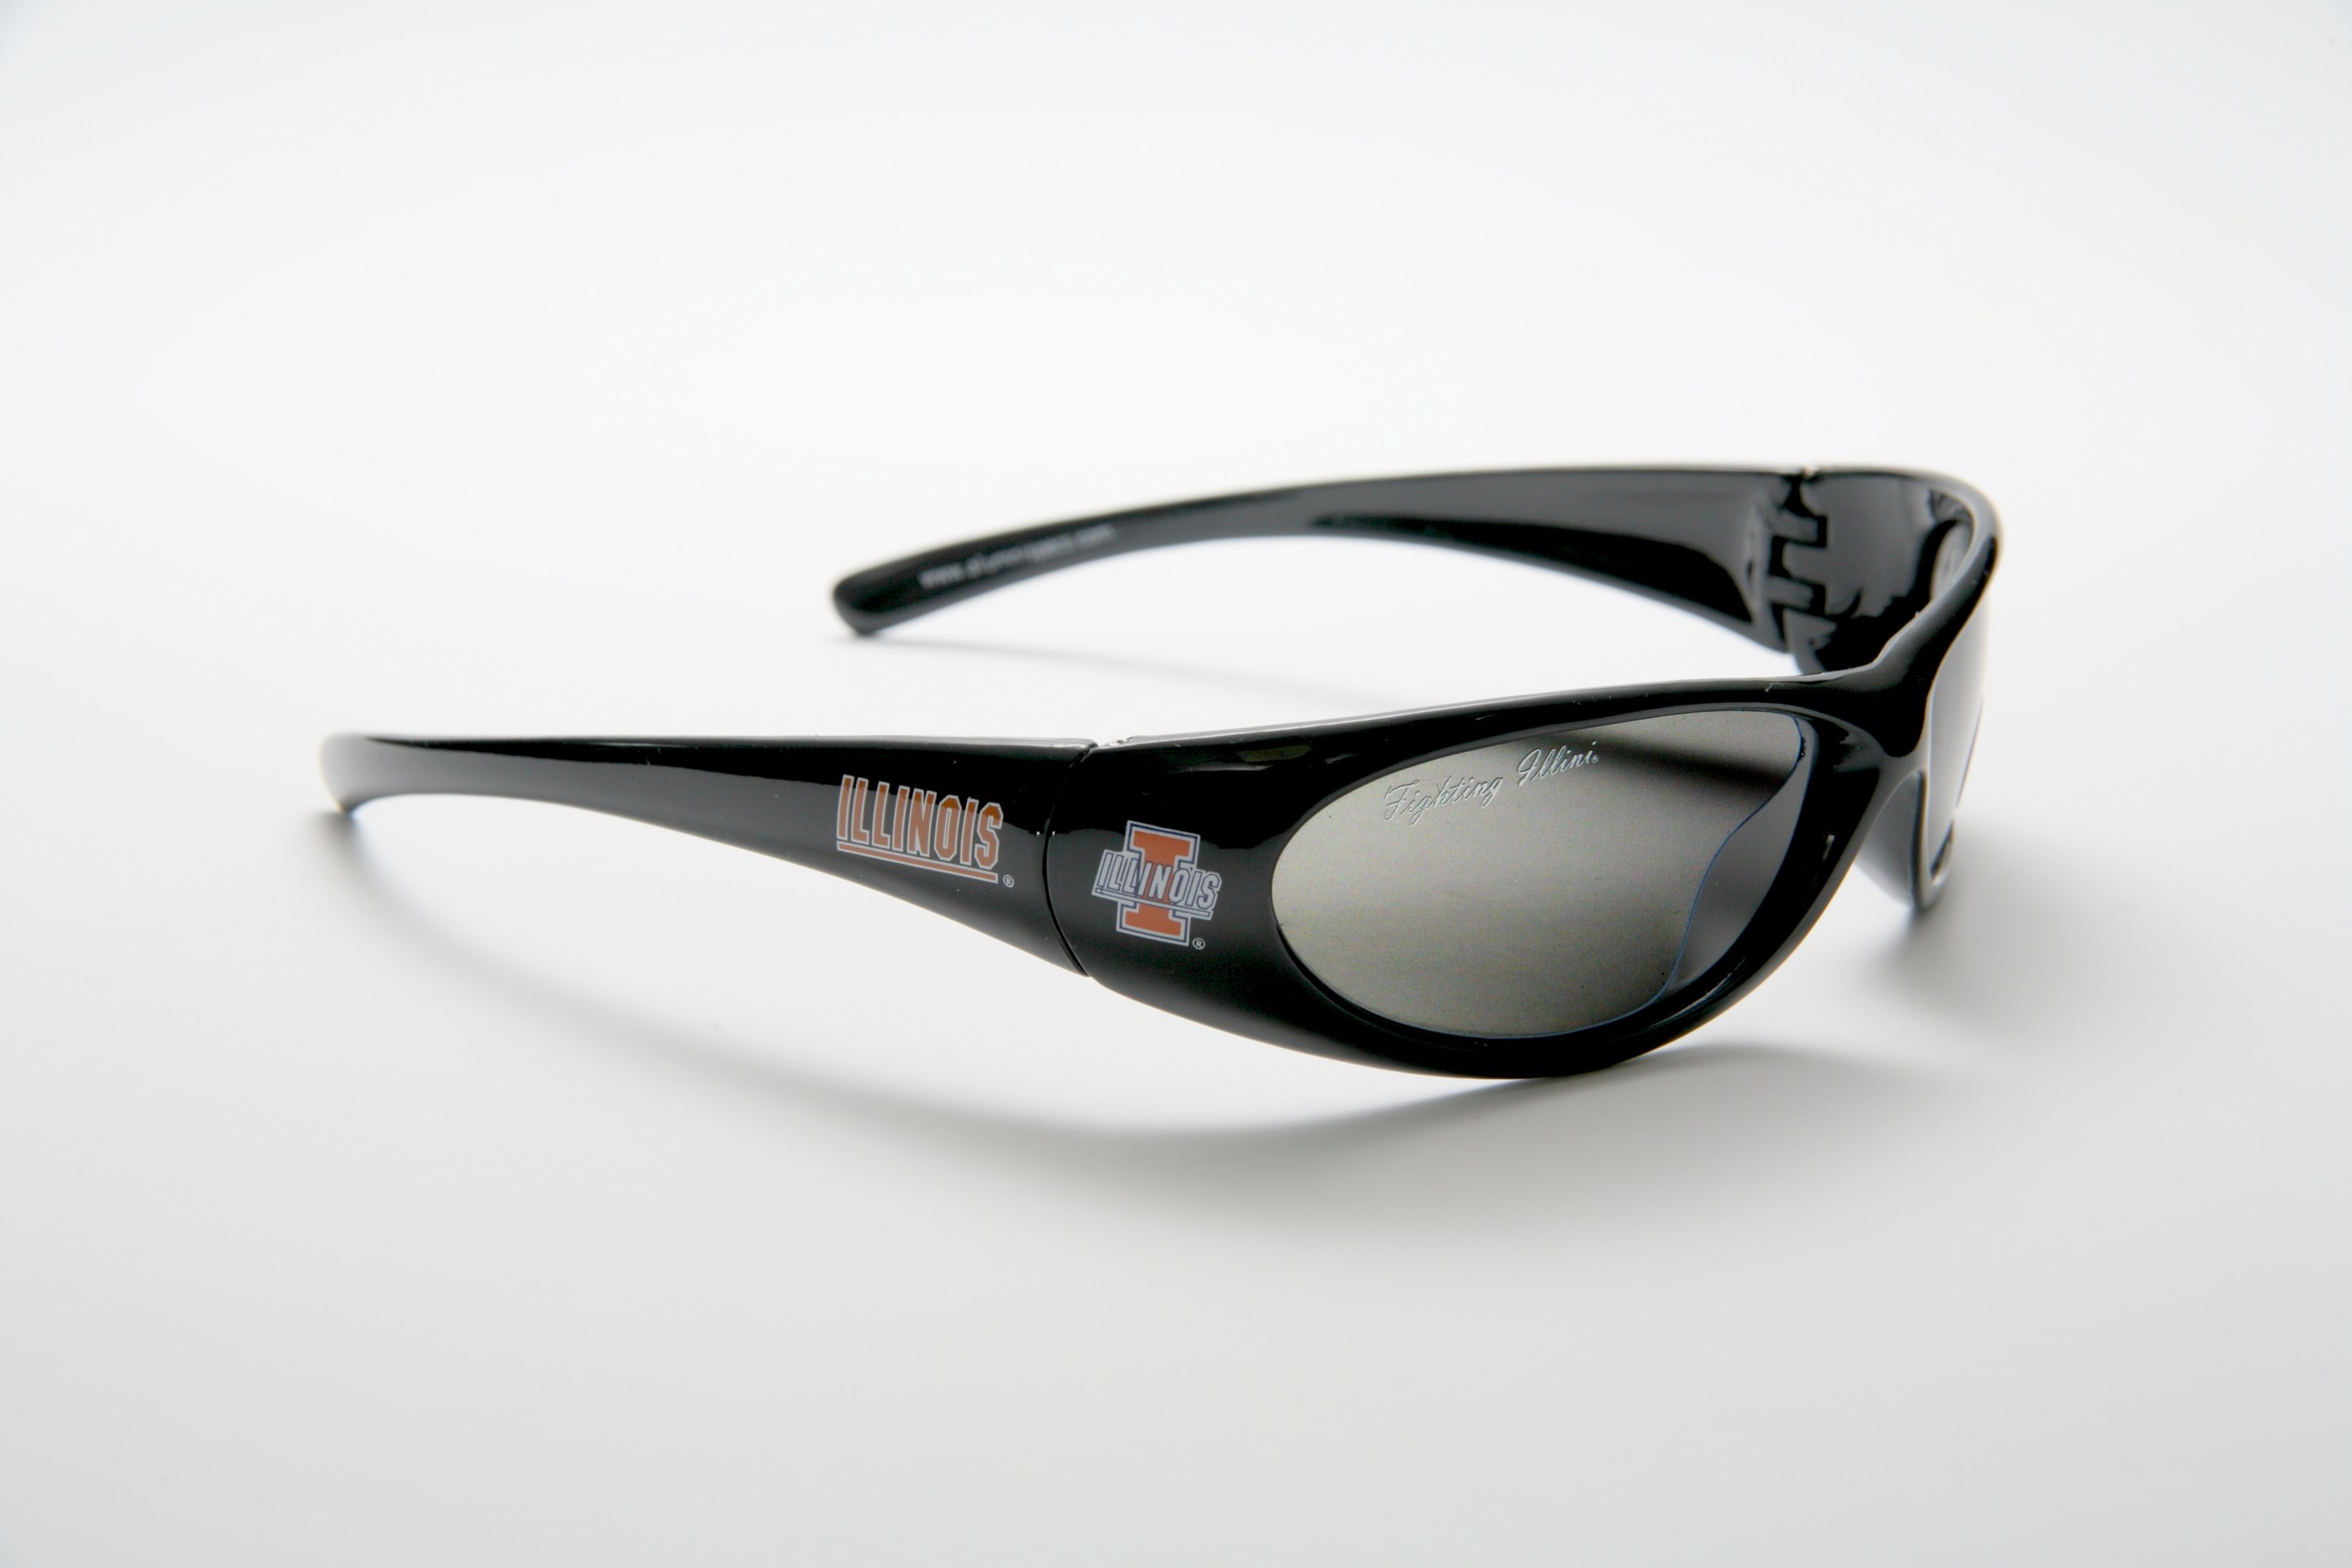 Illinois Polarized Sunglasses